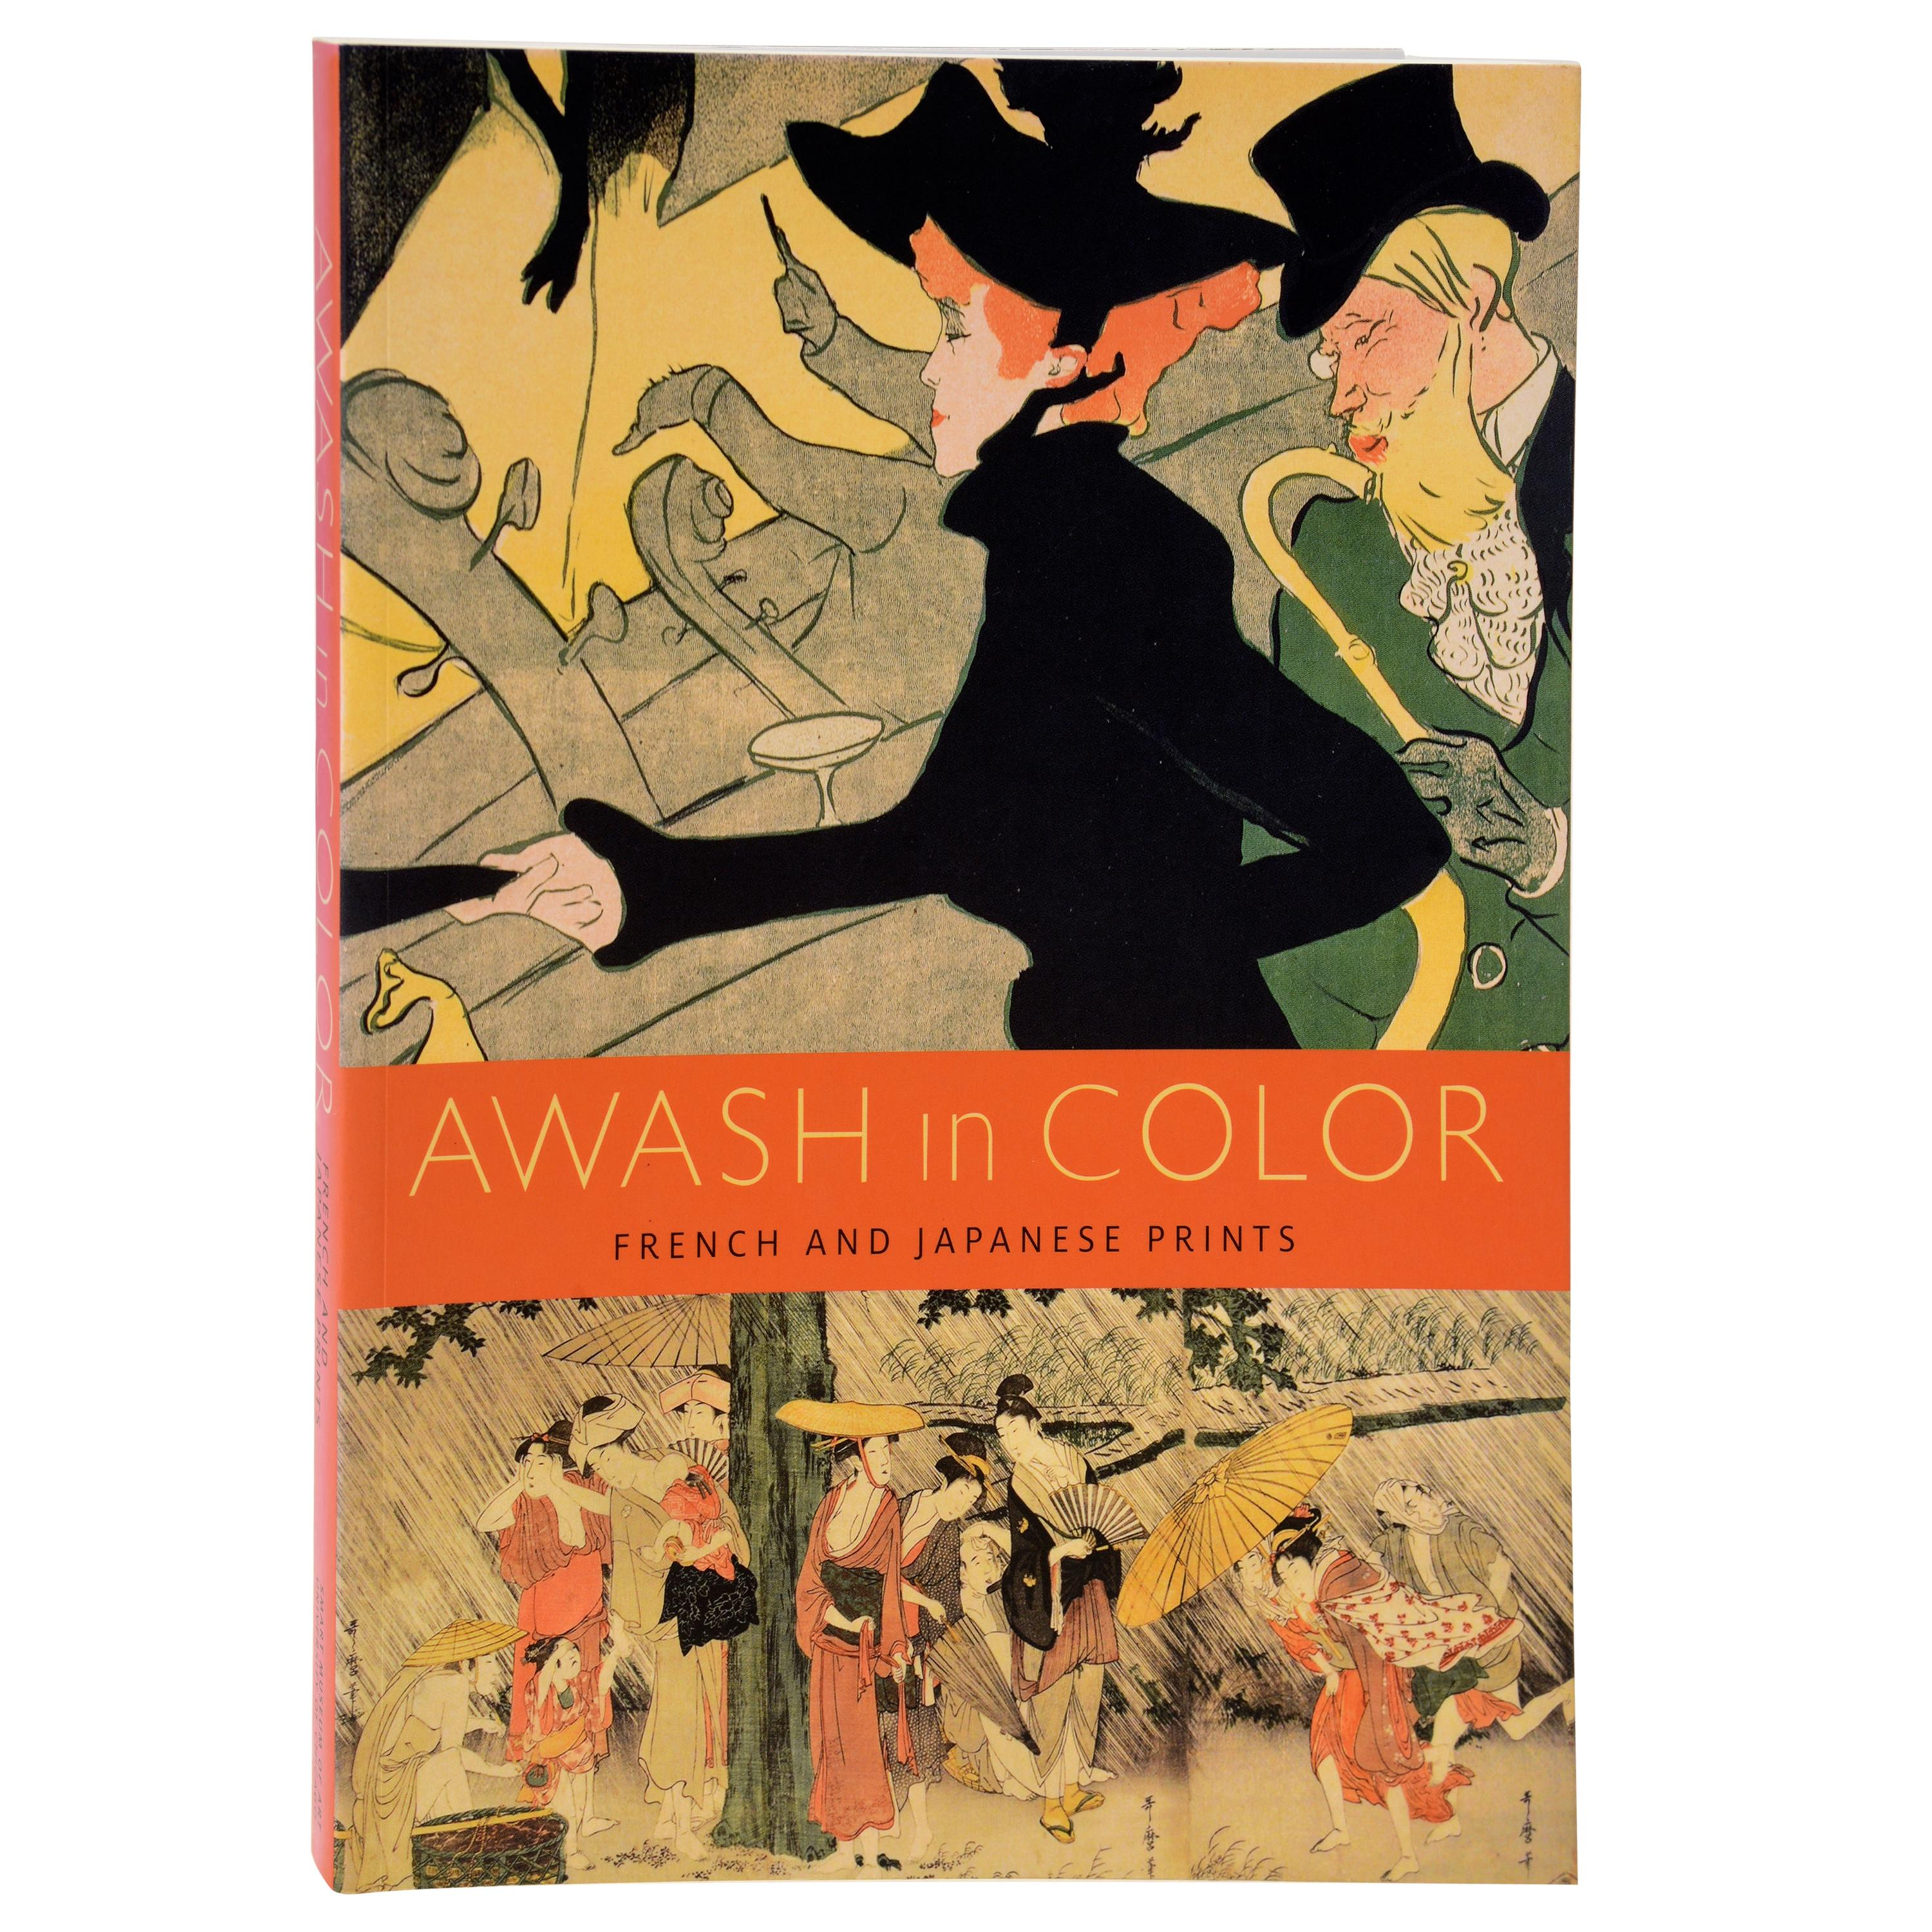 Awash in Color French and Japanese Prints by Chelsea Foxwell